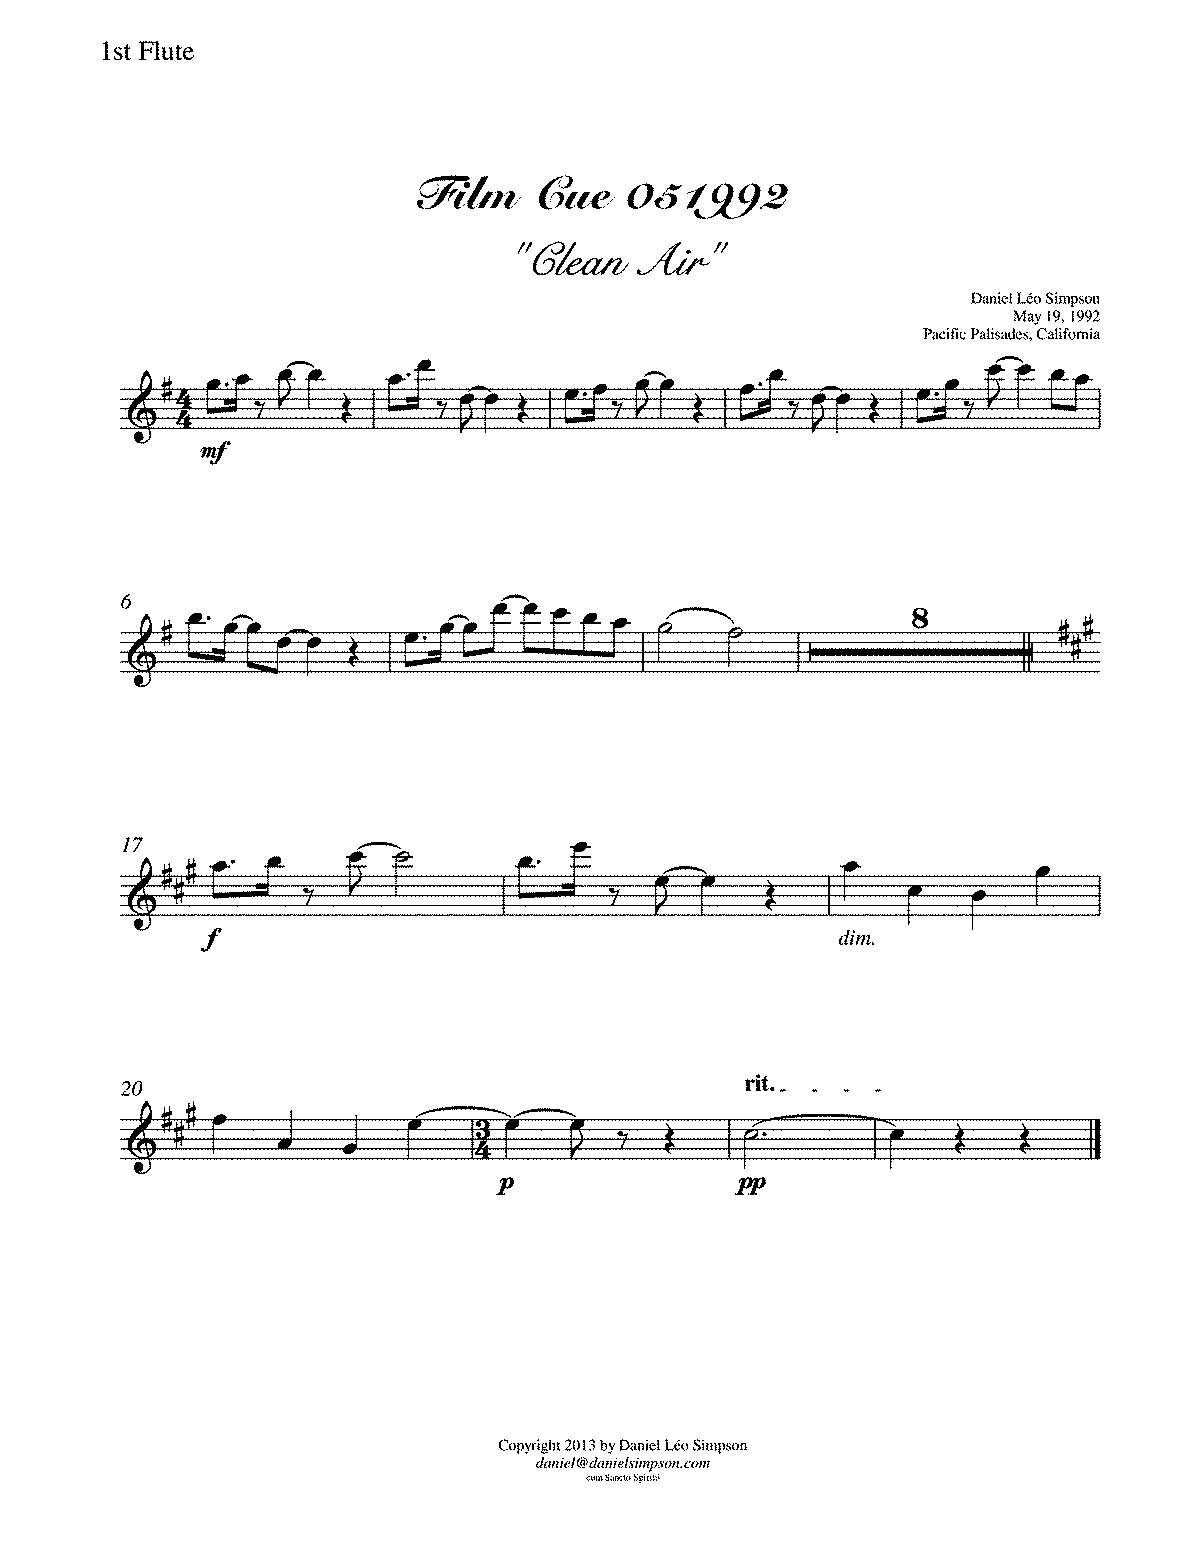 PMLP452468-FLUTES-film-cue-051992-clean-air-simpson-imslp-042413.pdf